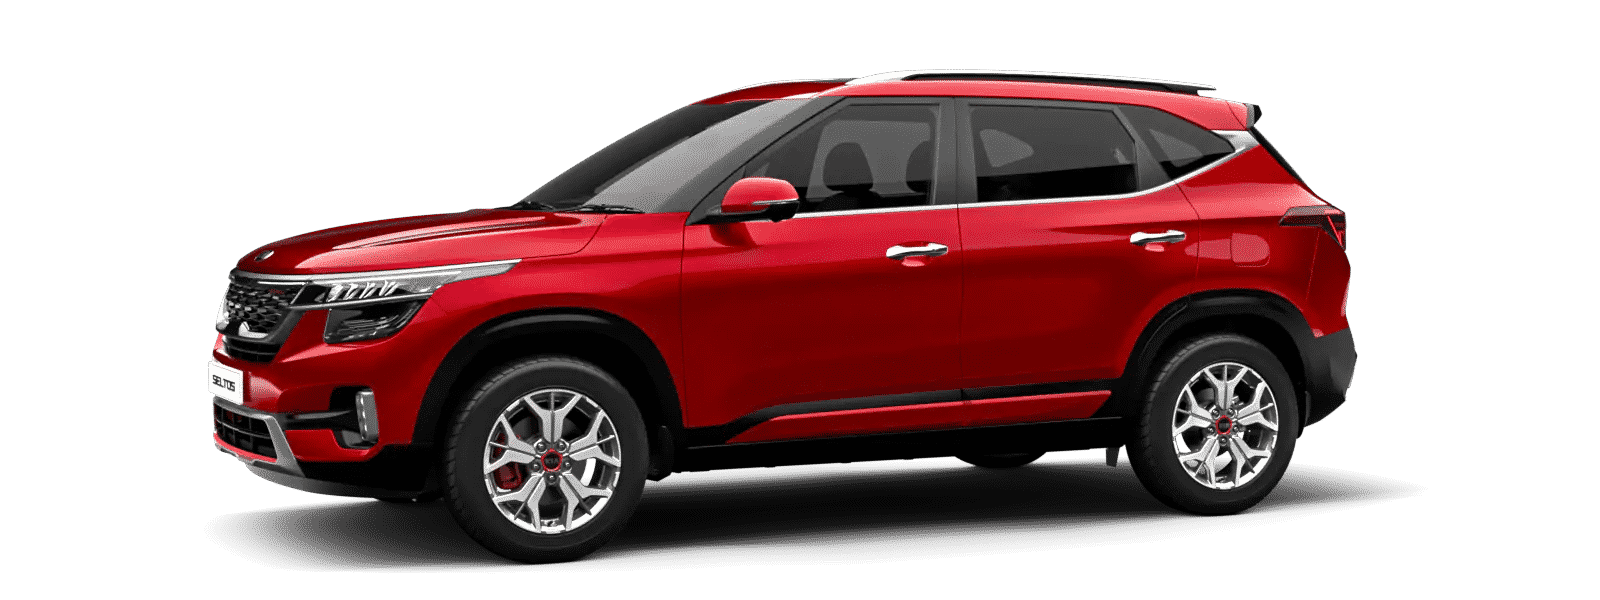 Kia Seltos Intense Red